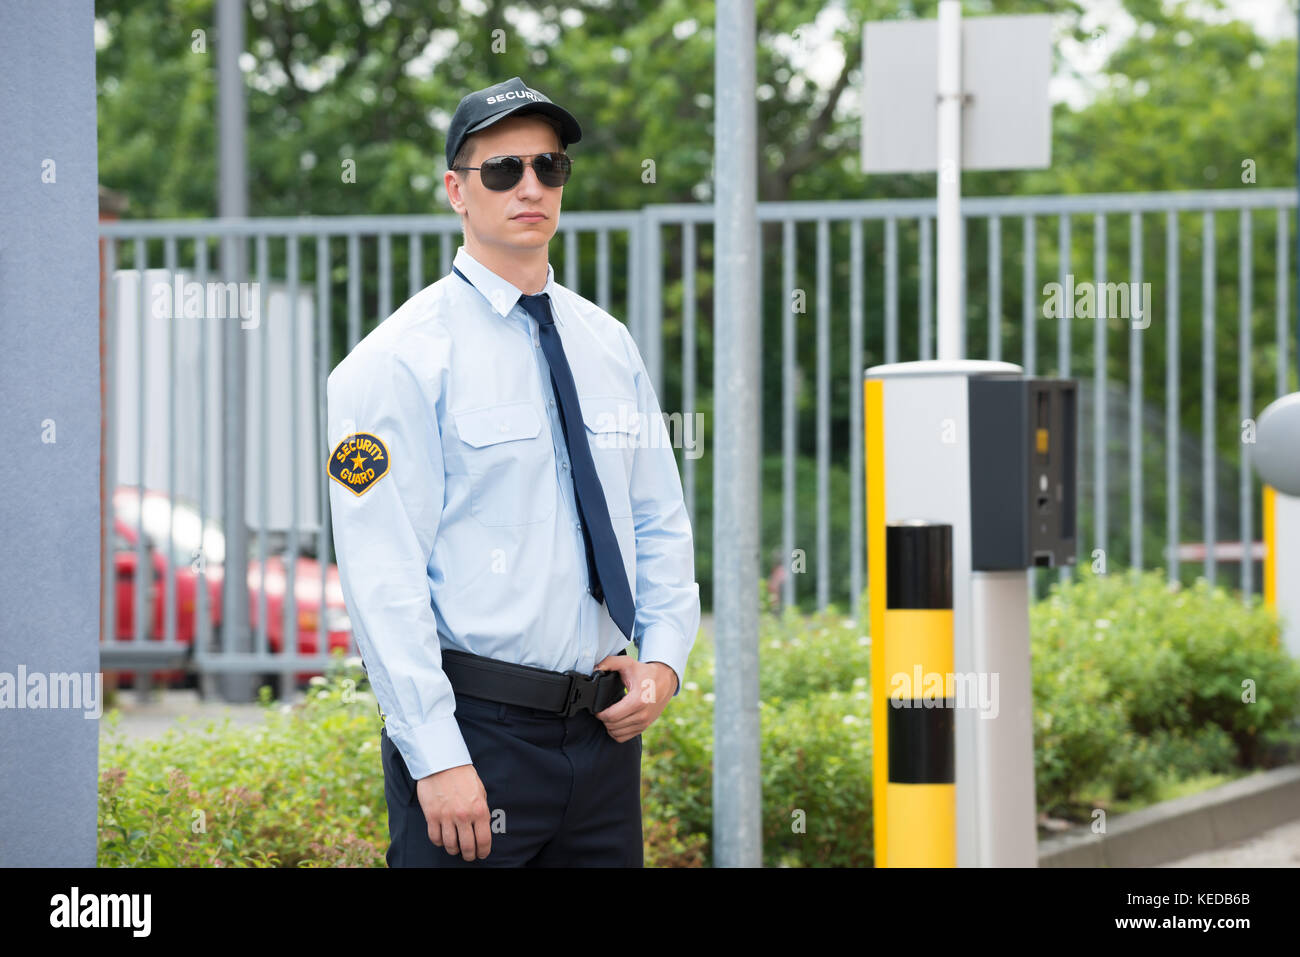 Young Male Security Guard Standing Beside Car Parking Machine - Stock Image